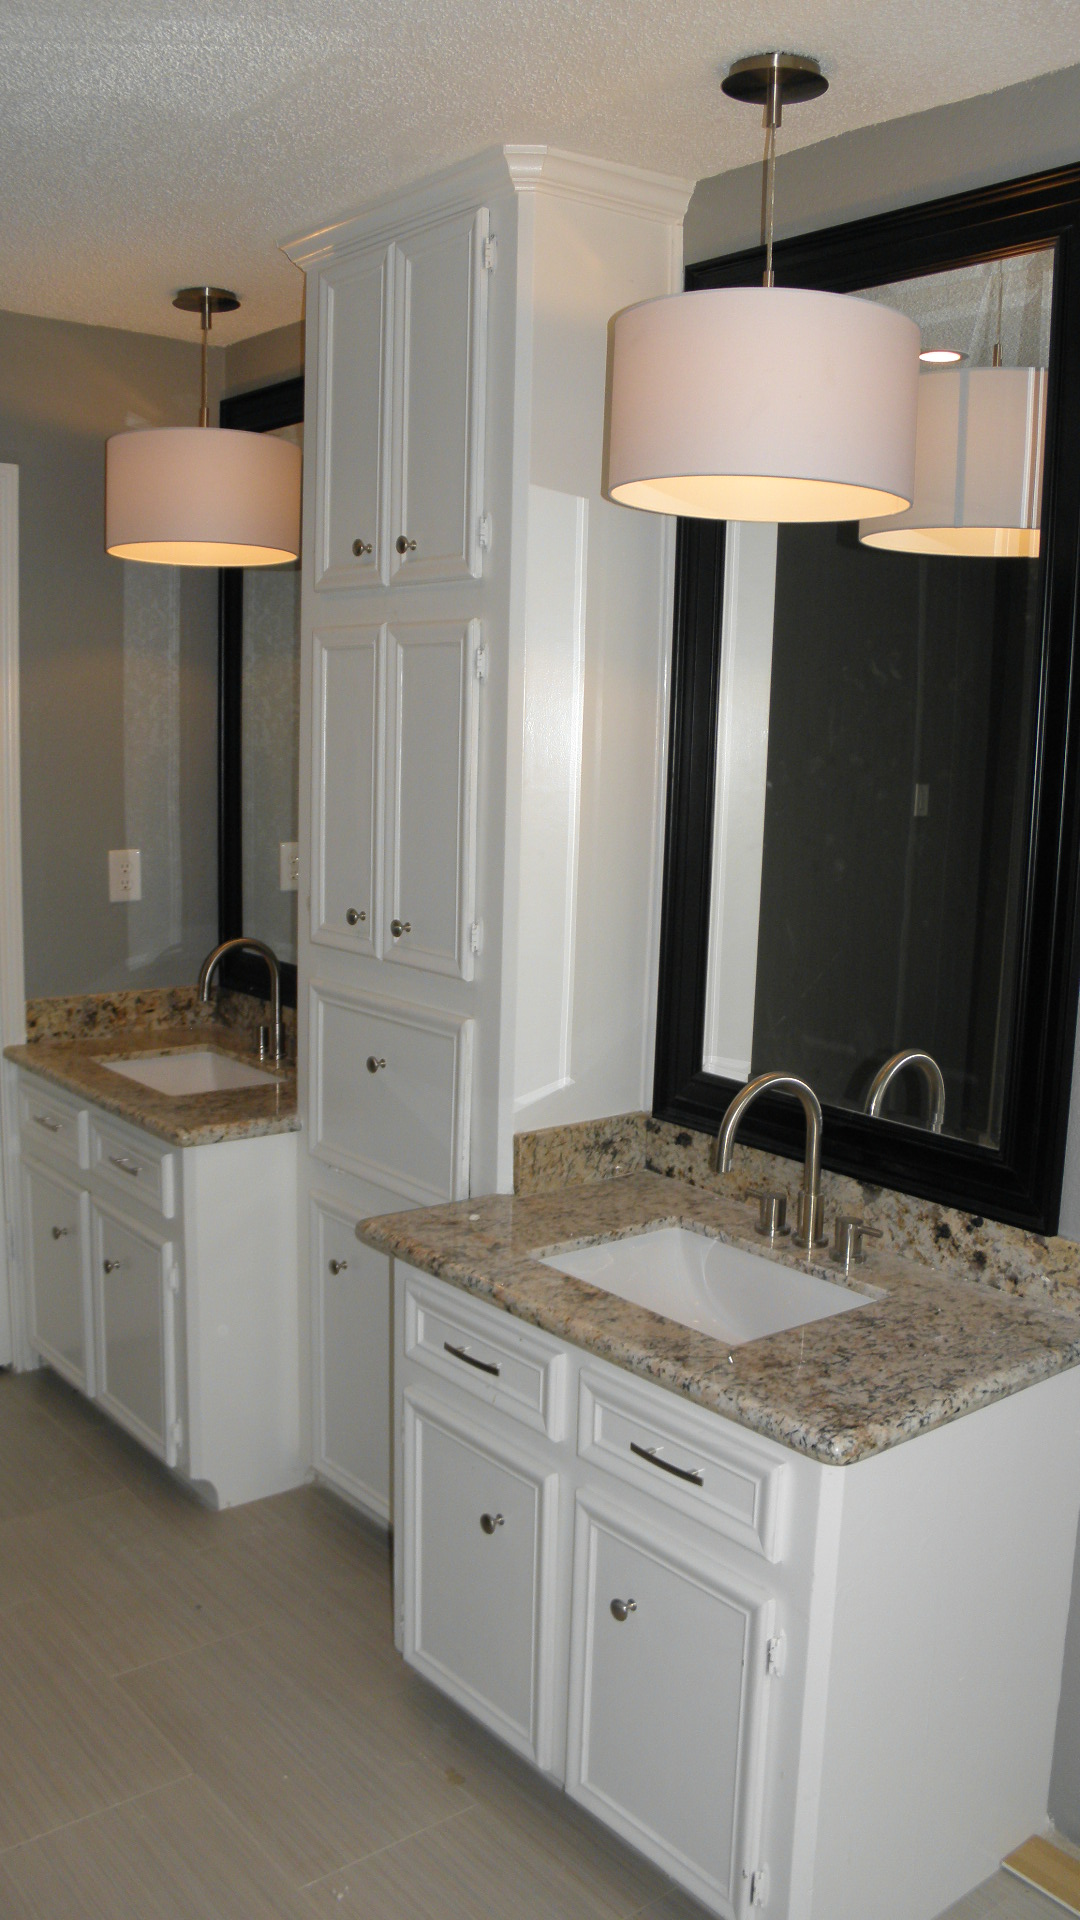 Bathroom Remodeling Contractor HomeBase Repairs LLC - Sugar land kitchen remodeling